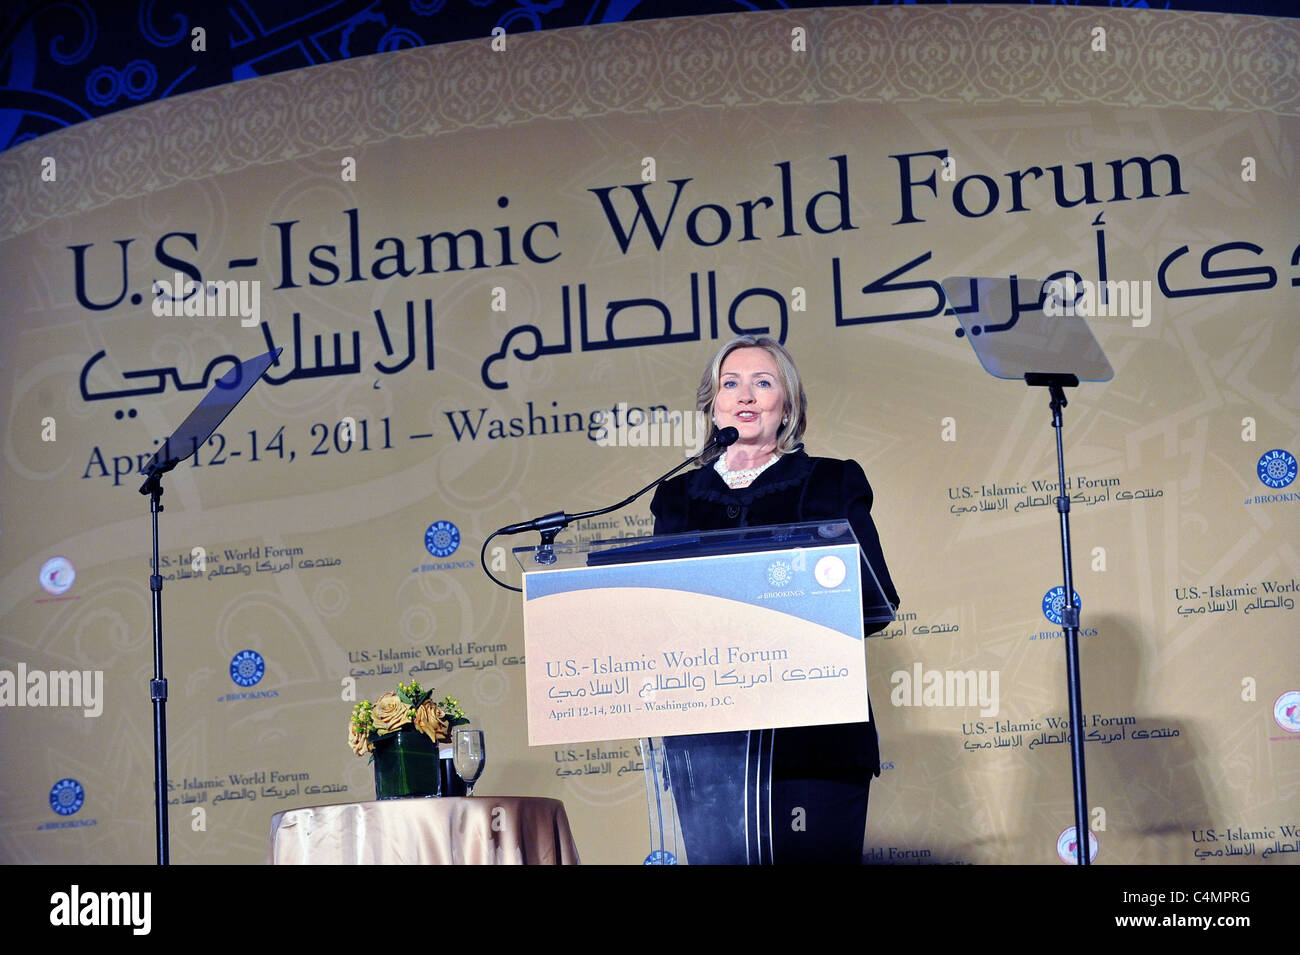 U.S. Secretary of State Hillary Rodham Clinton delivers remarks at the U.S.-Islamic World Forum in Washington, D.C. Stock Photo